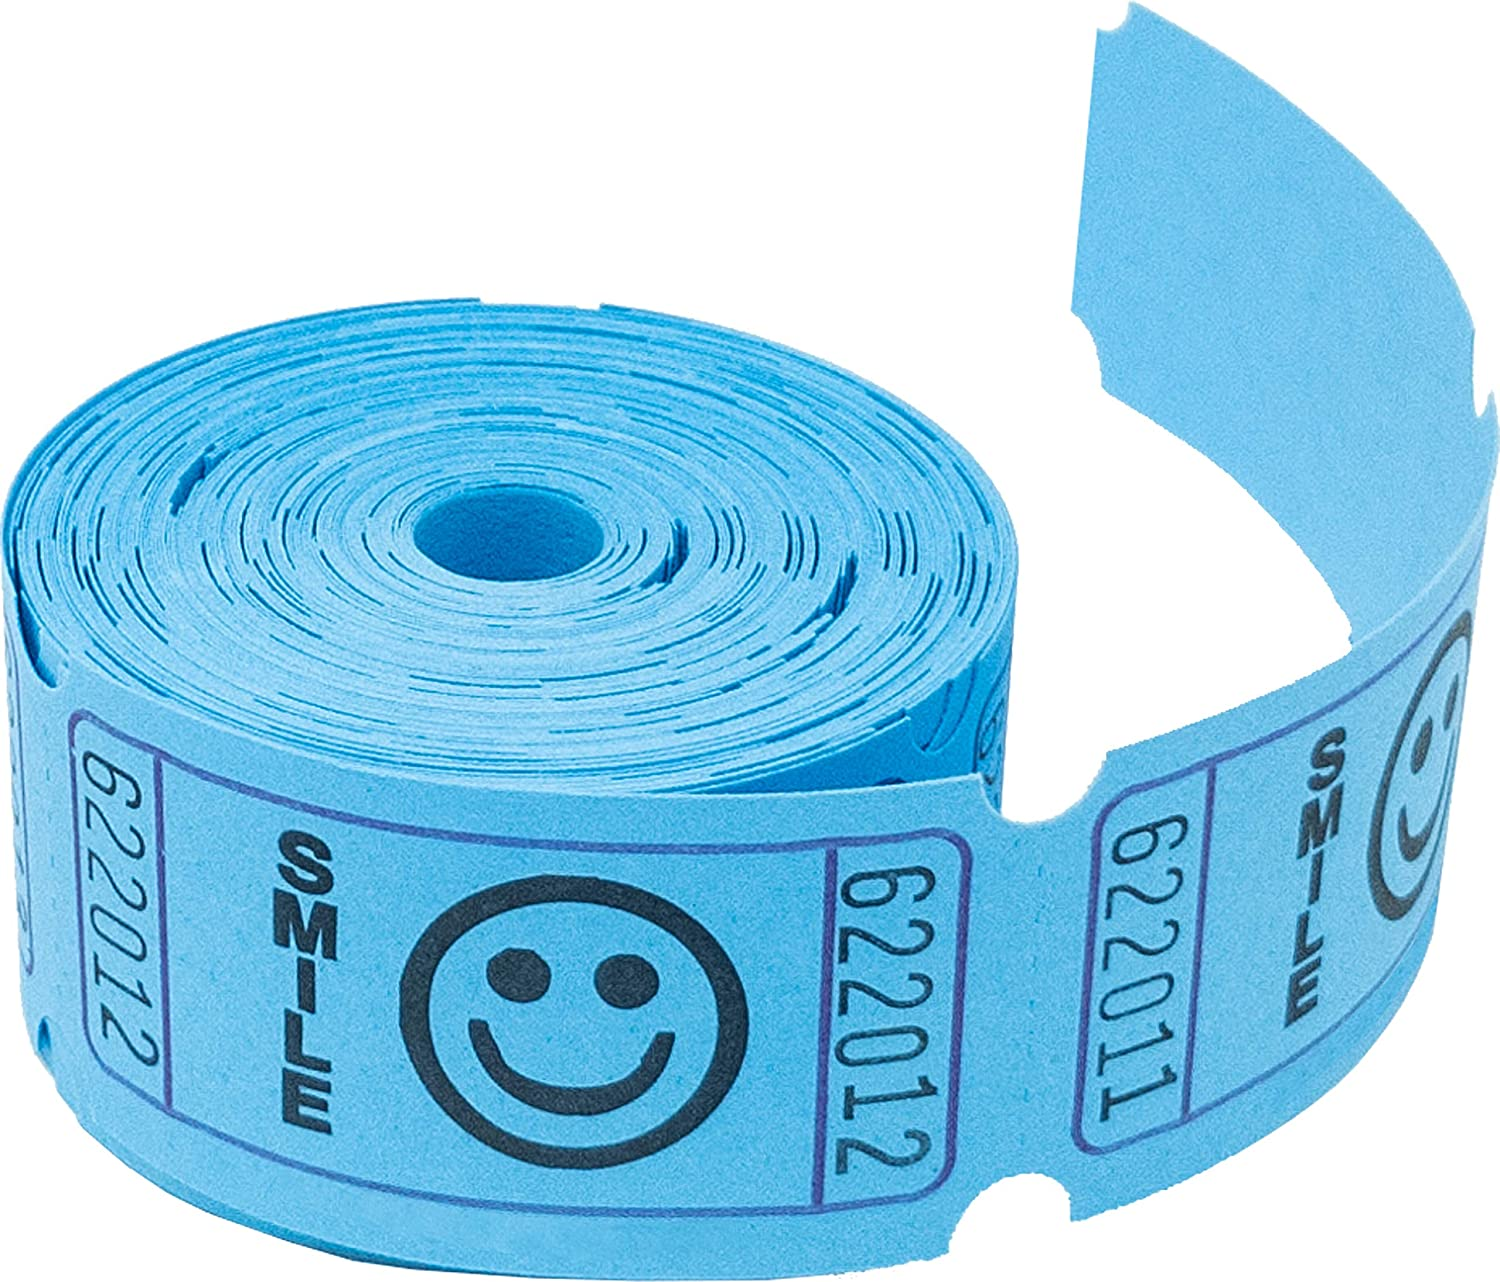 Tacticai 200 Blue Raffle Tickets (8 Colors Available) for Events, Entry, Class Reward, Admittance, or Fundraising, Tear Away Tickets, Brightly Colored Paper (Single Roll - Smile) - Made in USA